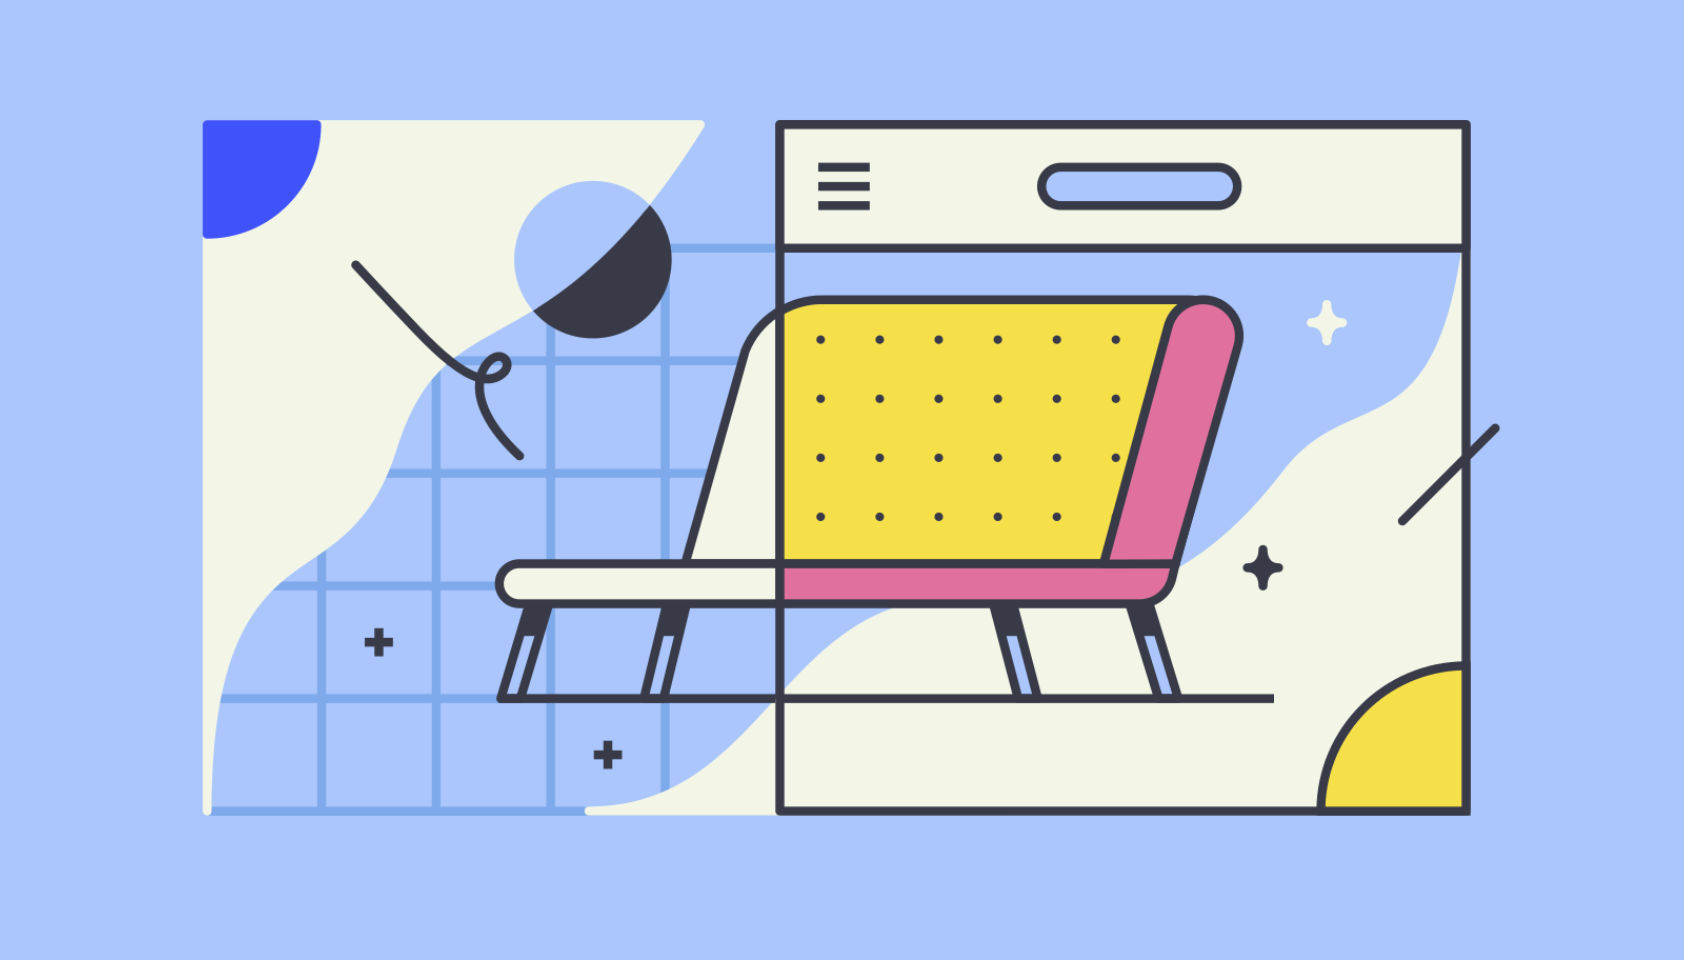 Popular design news of the week: July 1, 2019 - July 7, 2019